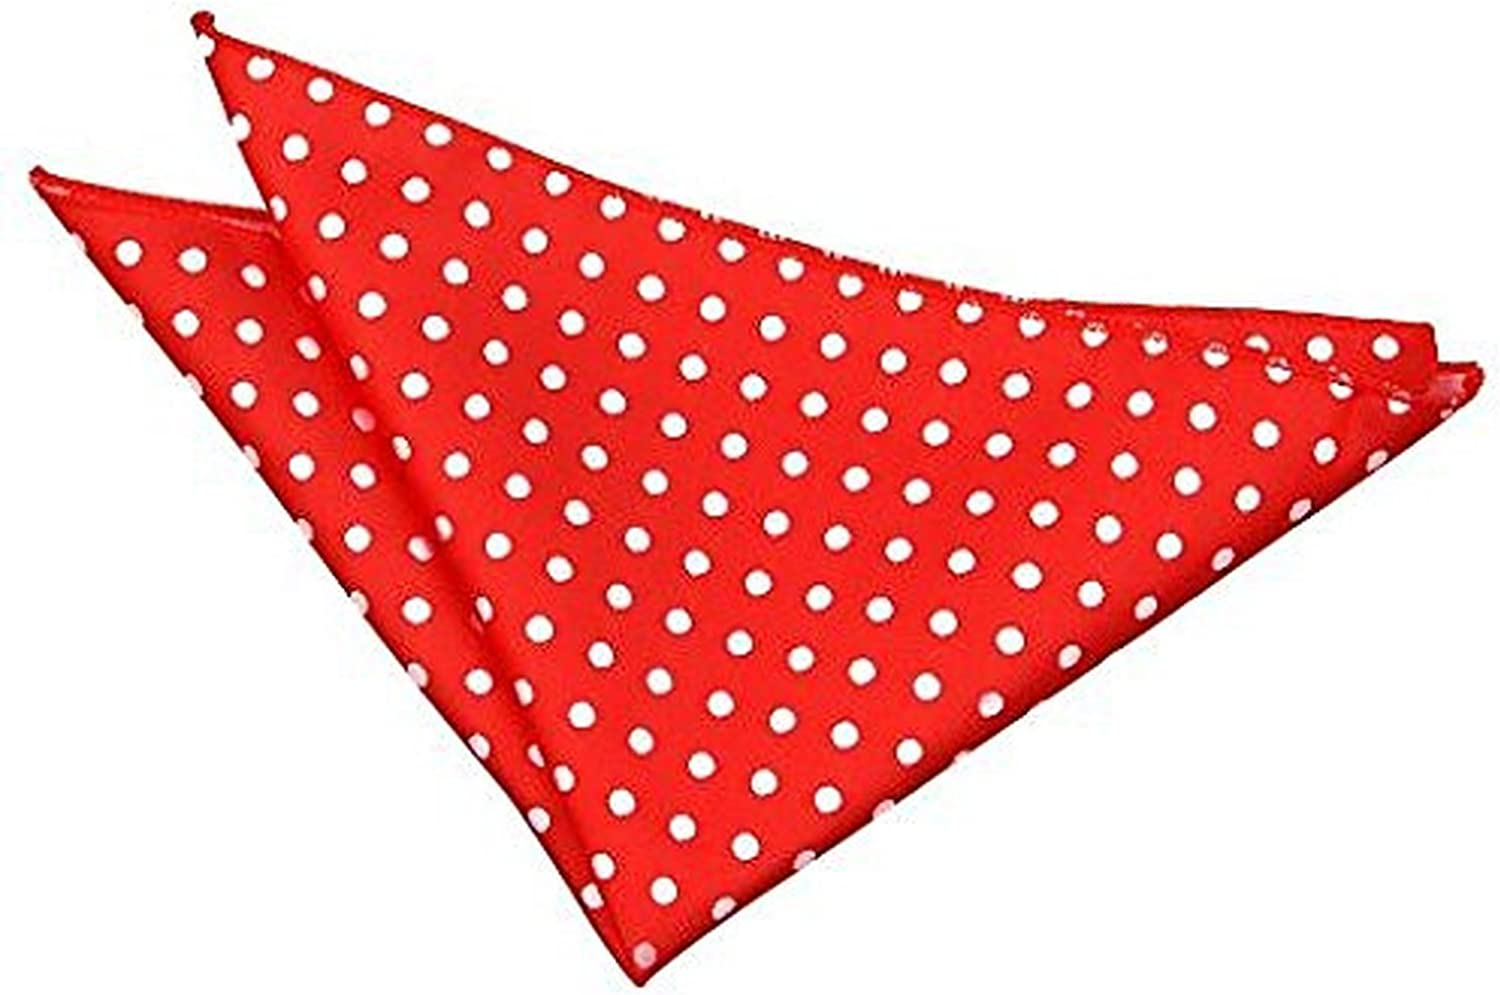 11 Colours Available DQT Woven Polka Dot Patterned Fashion Casual Pocket Square Handkerchief